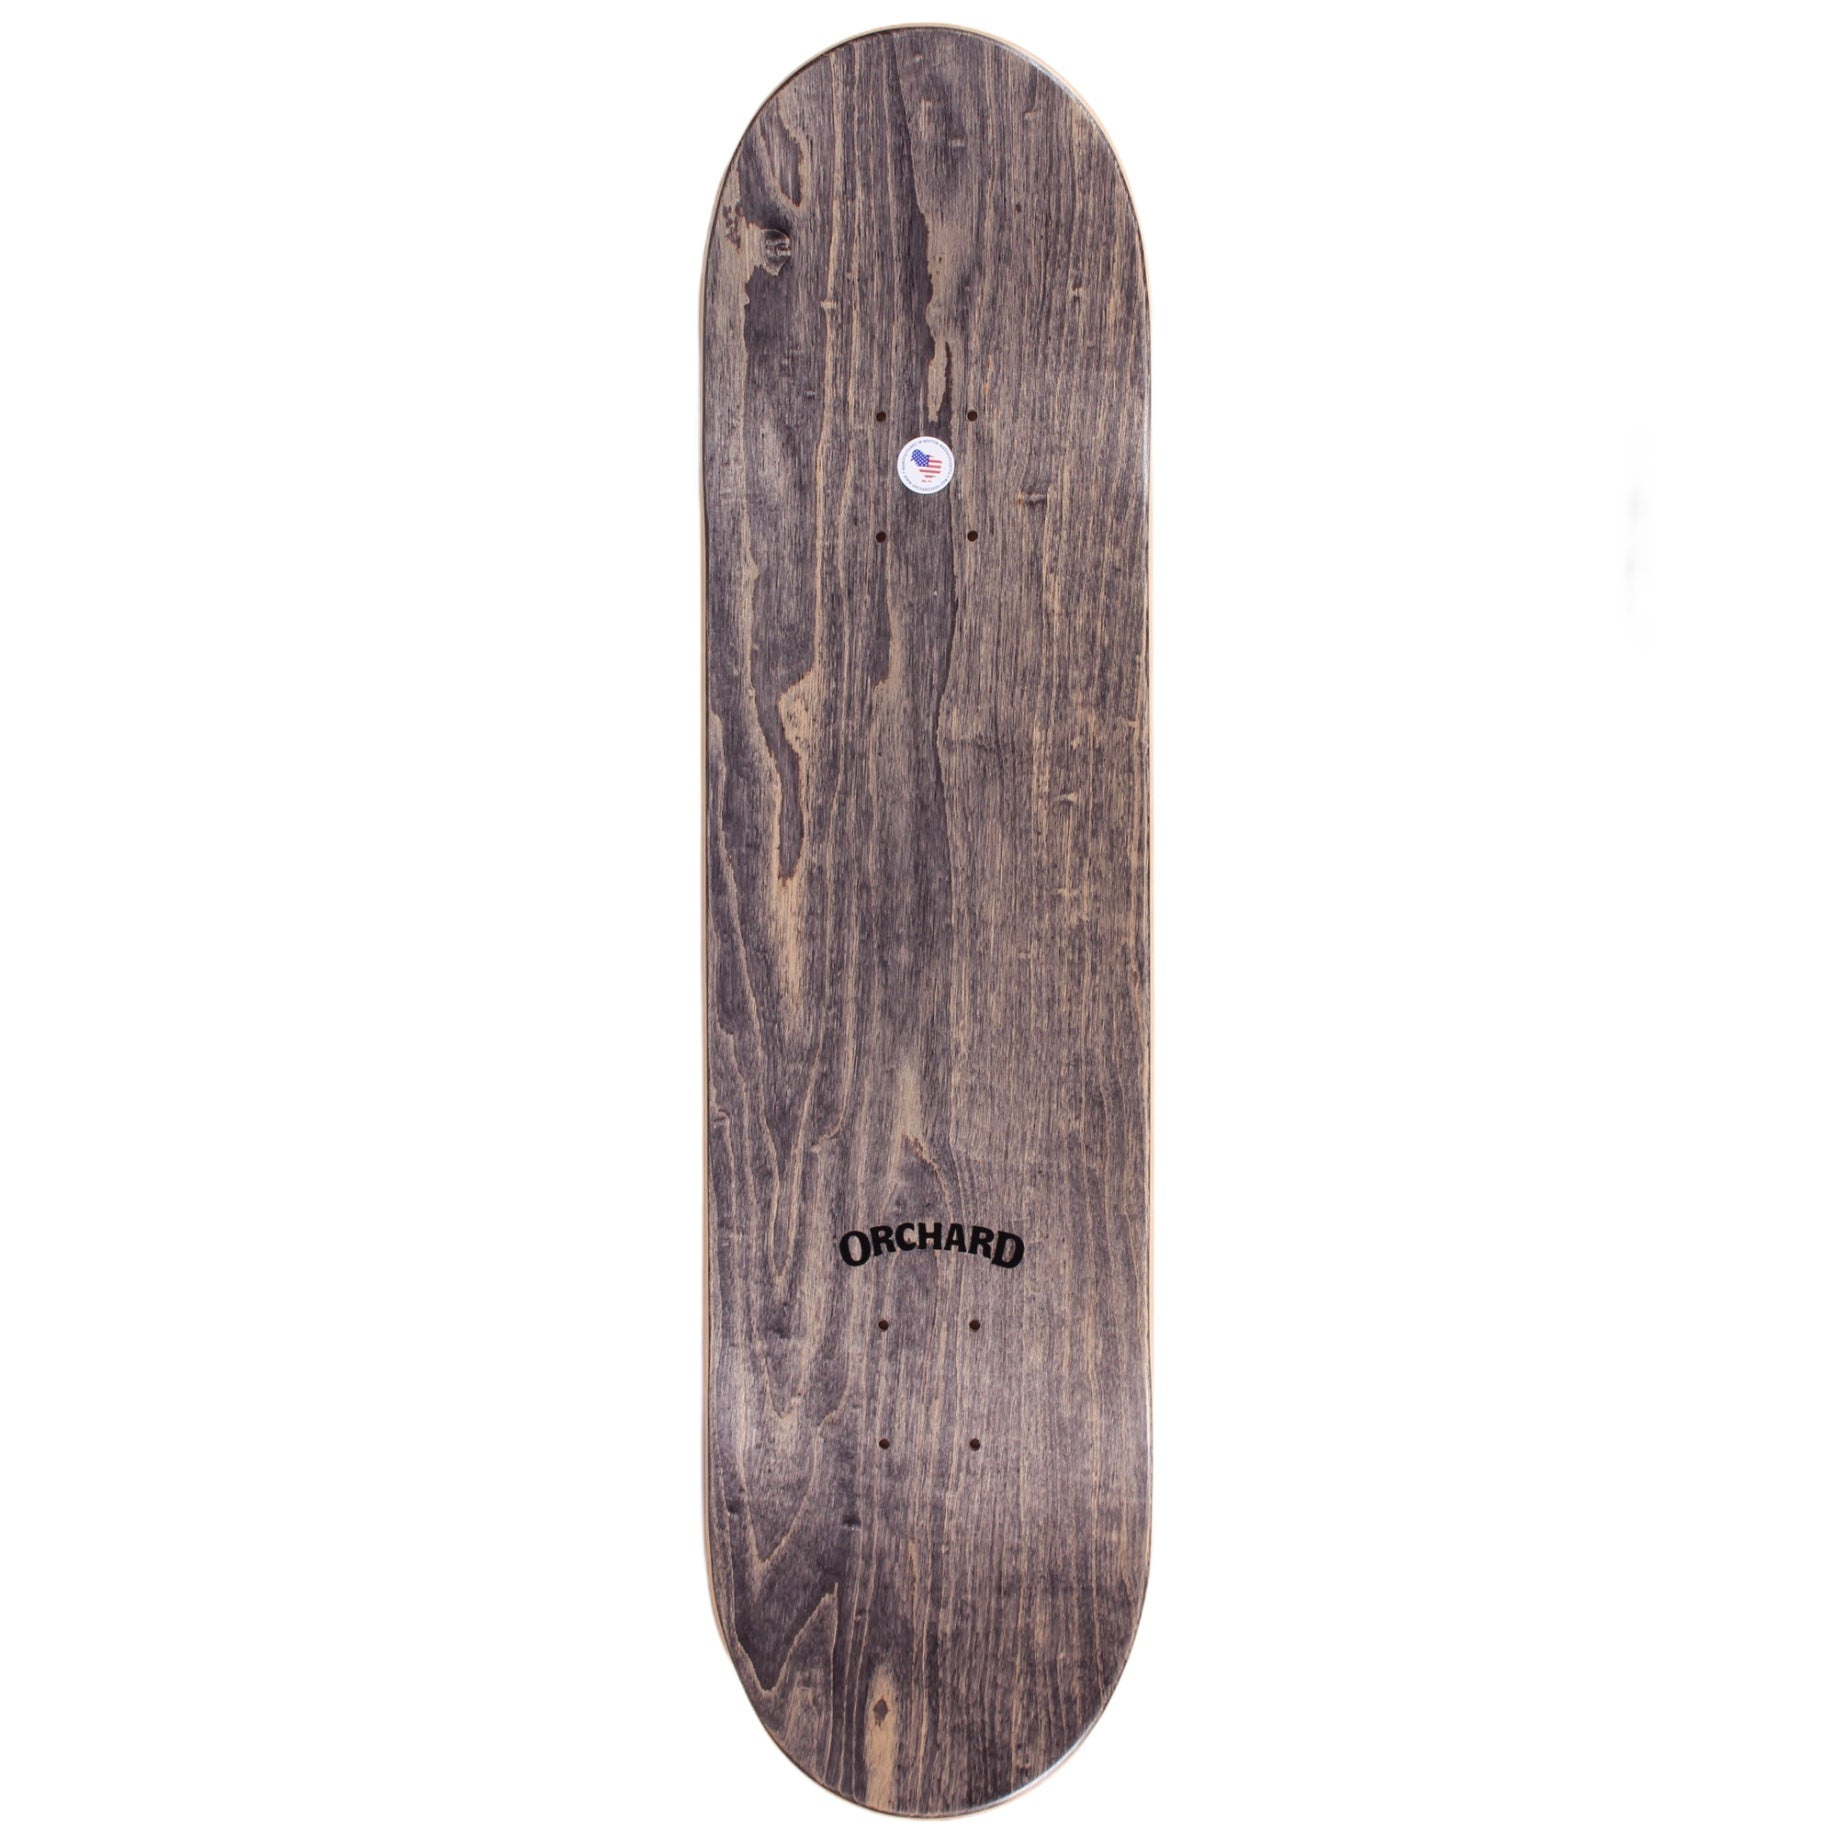 "Orchard Bird Logo Deck Green/White 8.1"" M1"